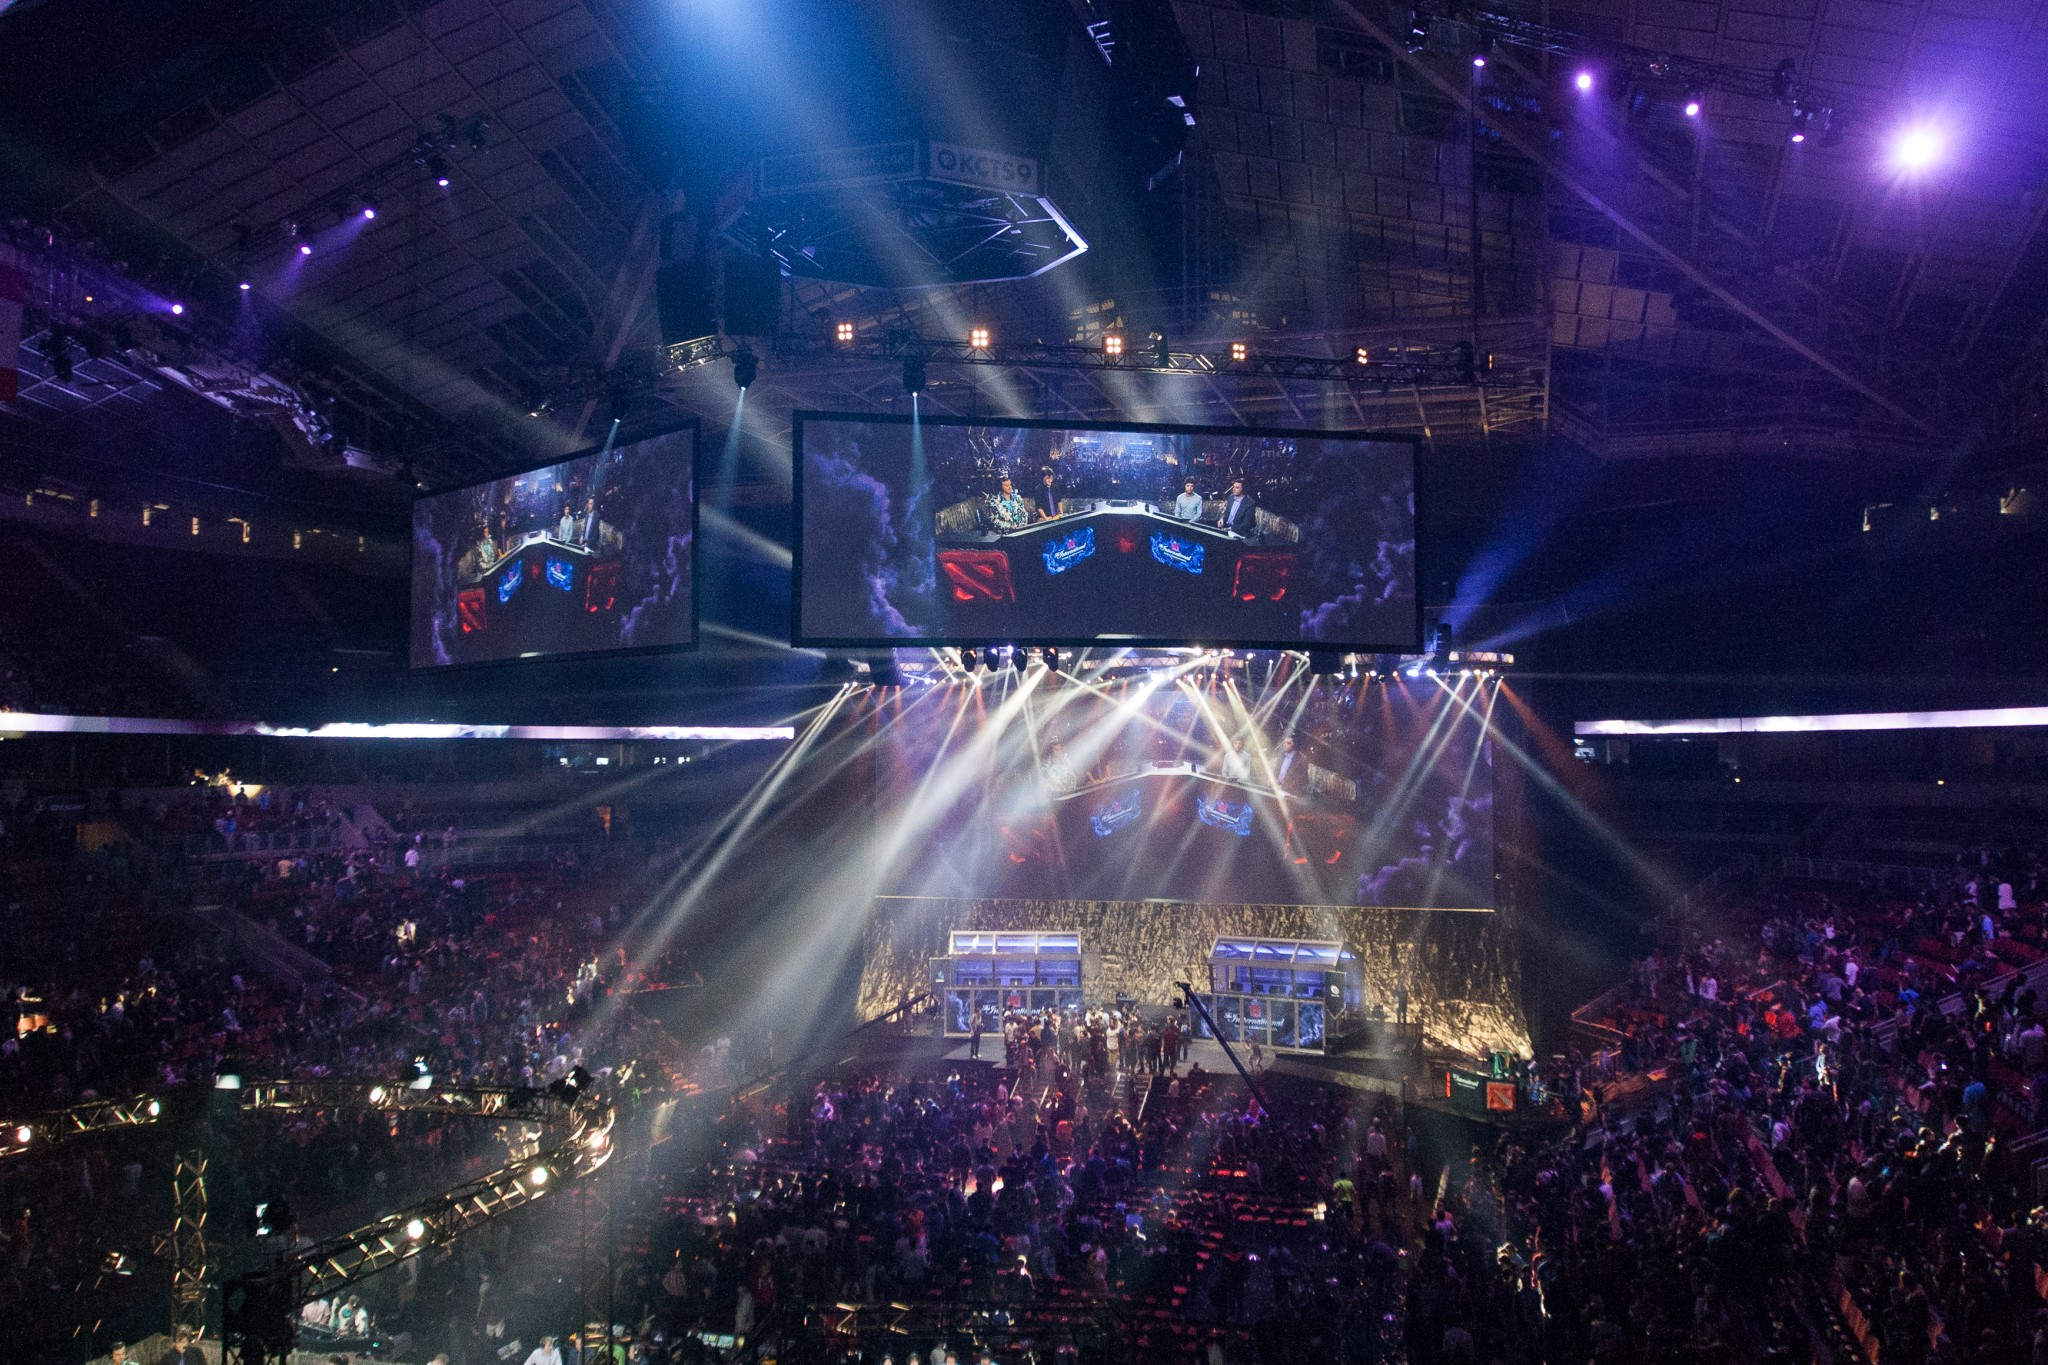 The Skoltech Esports Academy will train e-athletes to take home the gold in major international tournaments. Photo credit: Jakob Wells/Wikimedia Commons